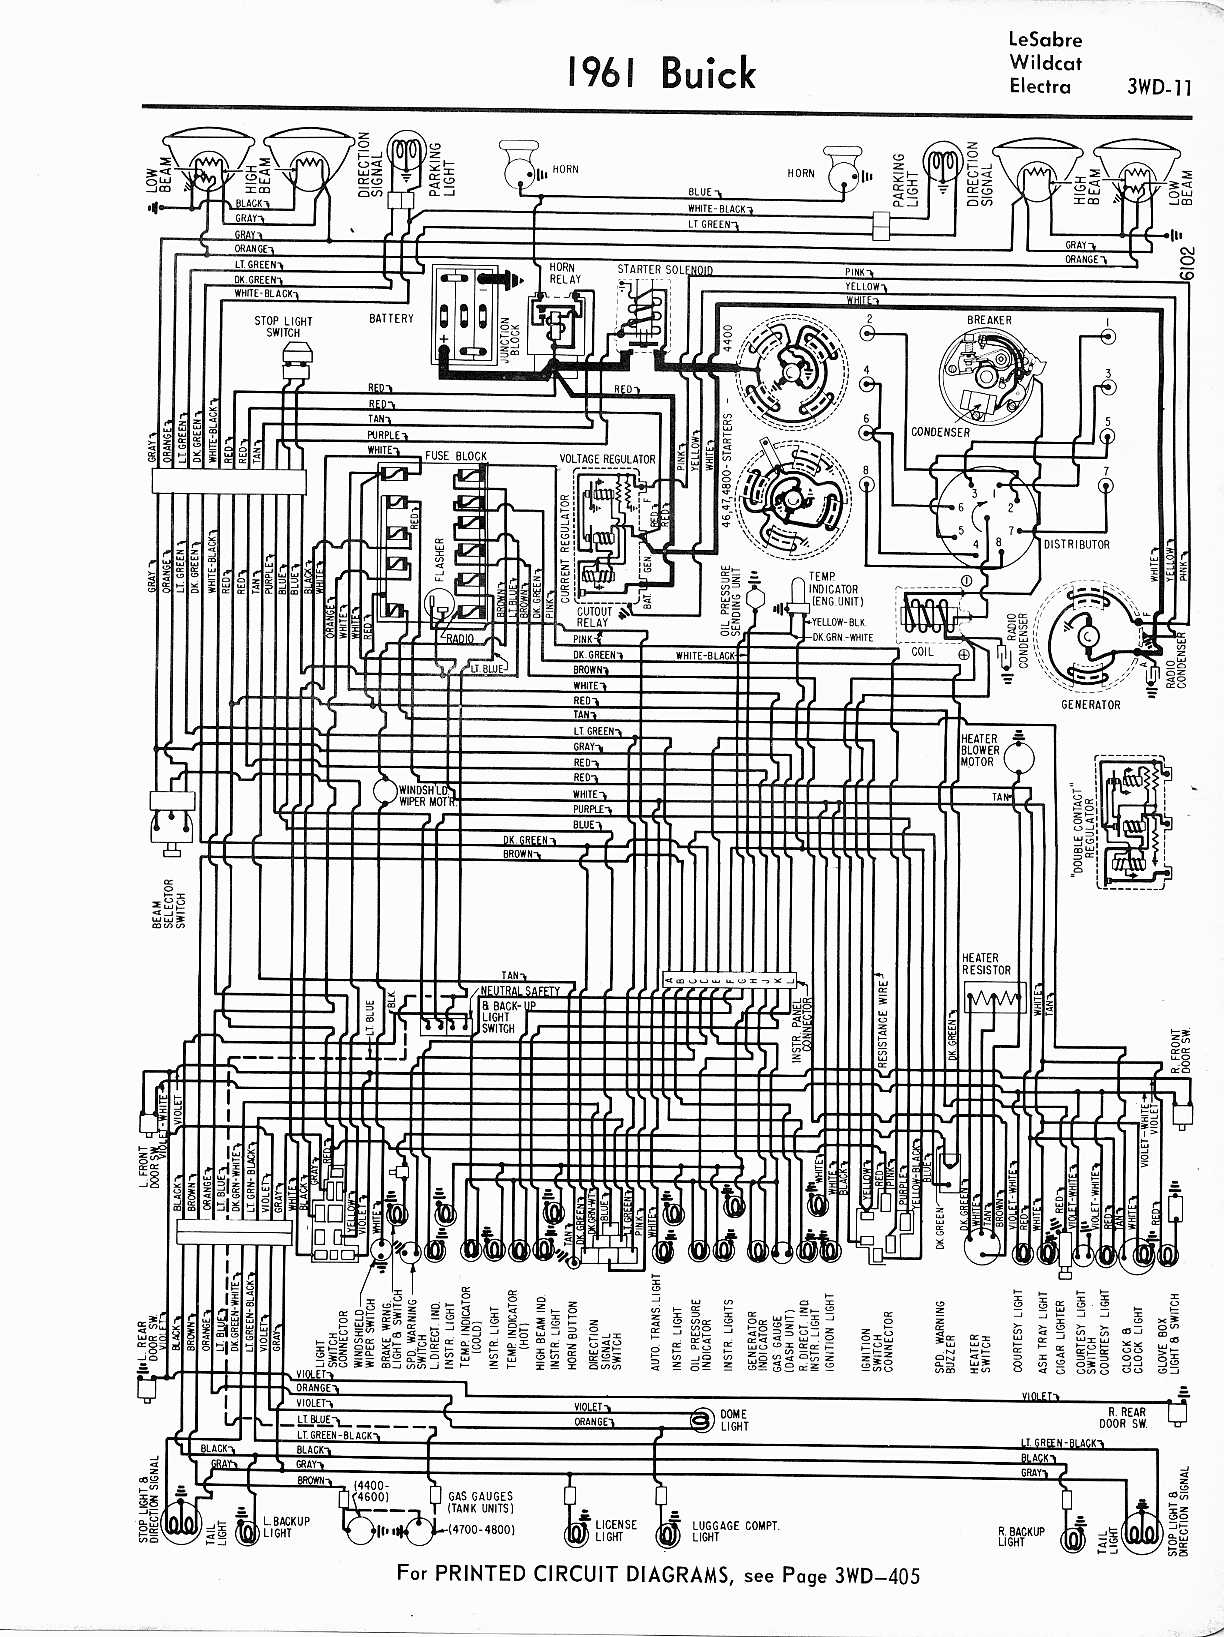 MWireBuic65_3WD 011 buick wiring diagrams 1957 1965 2000 C5 Corvette Wiring Diagram at fashall.co